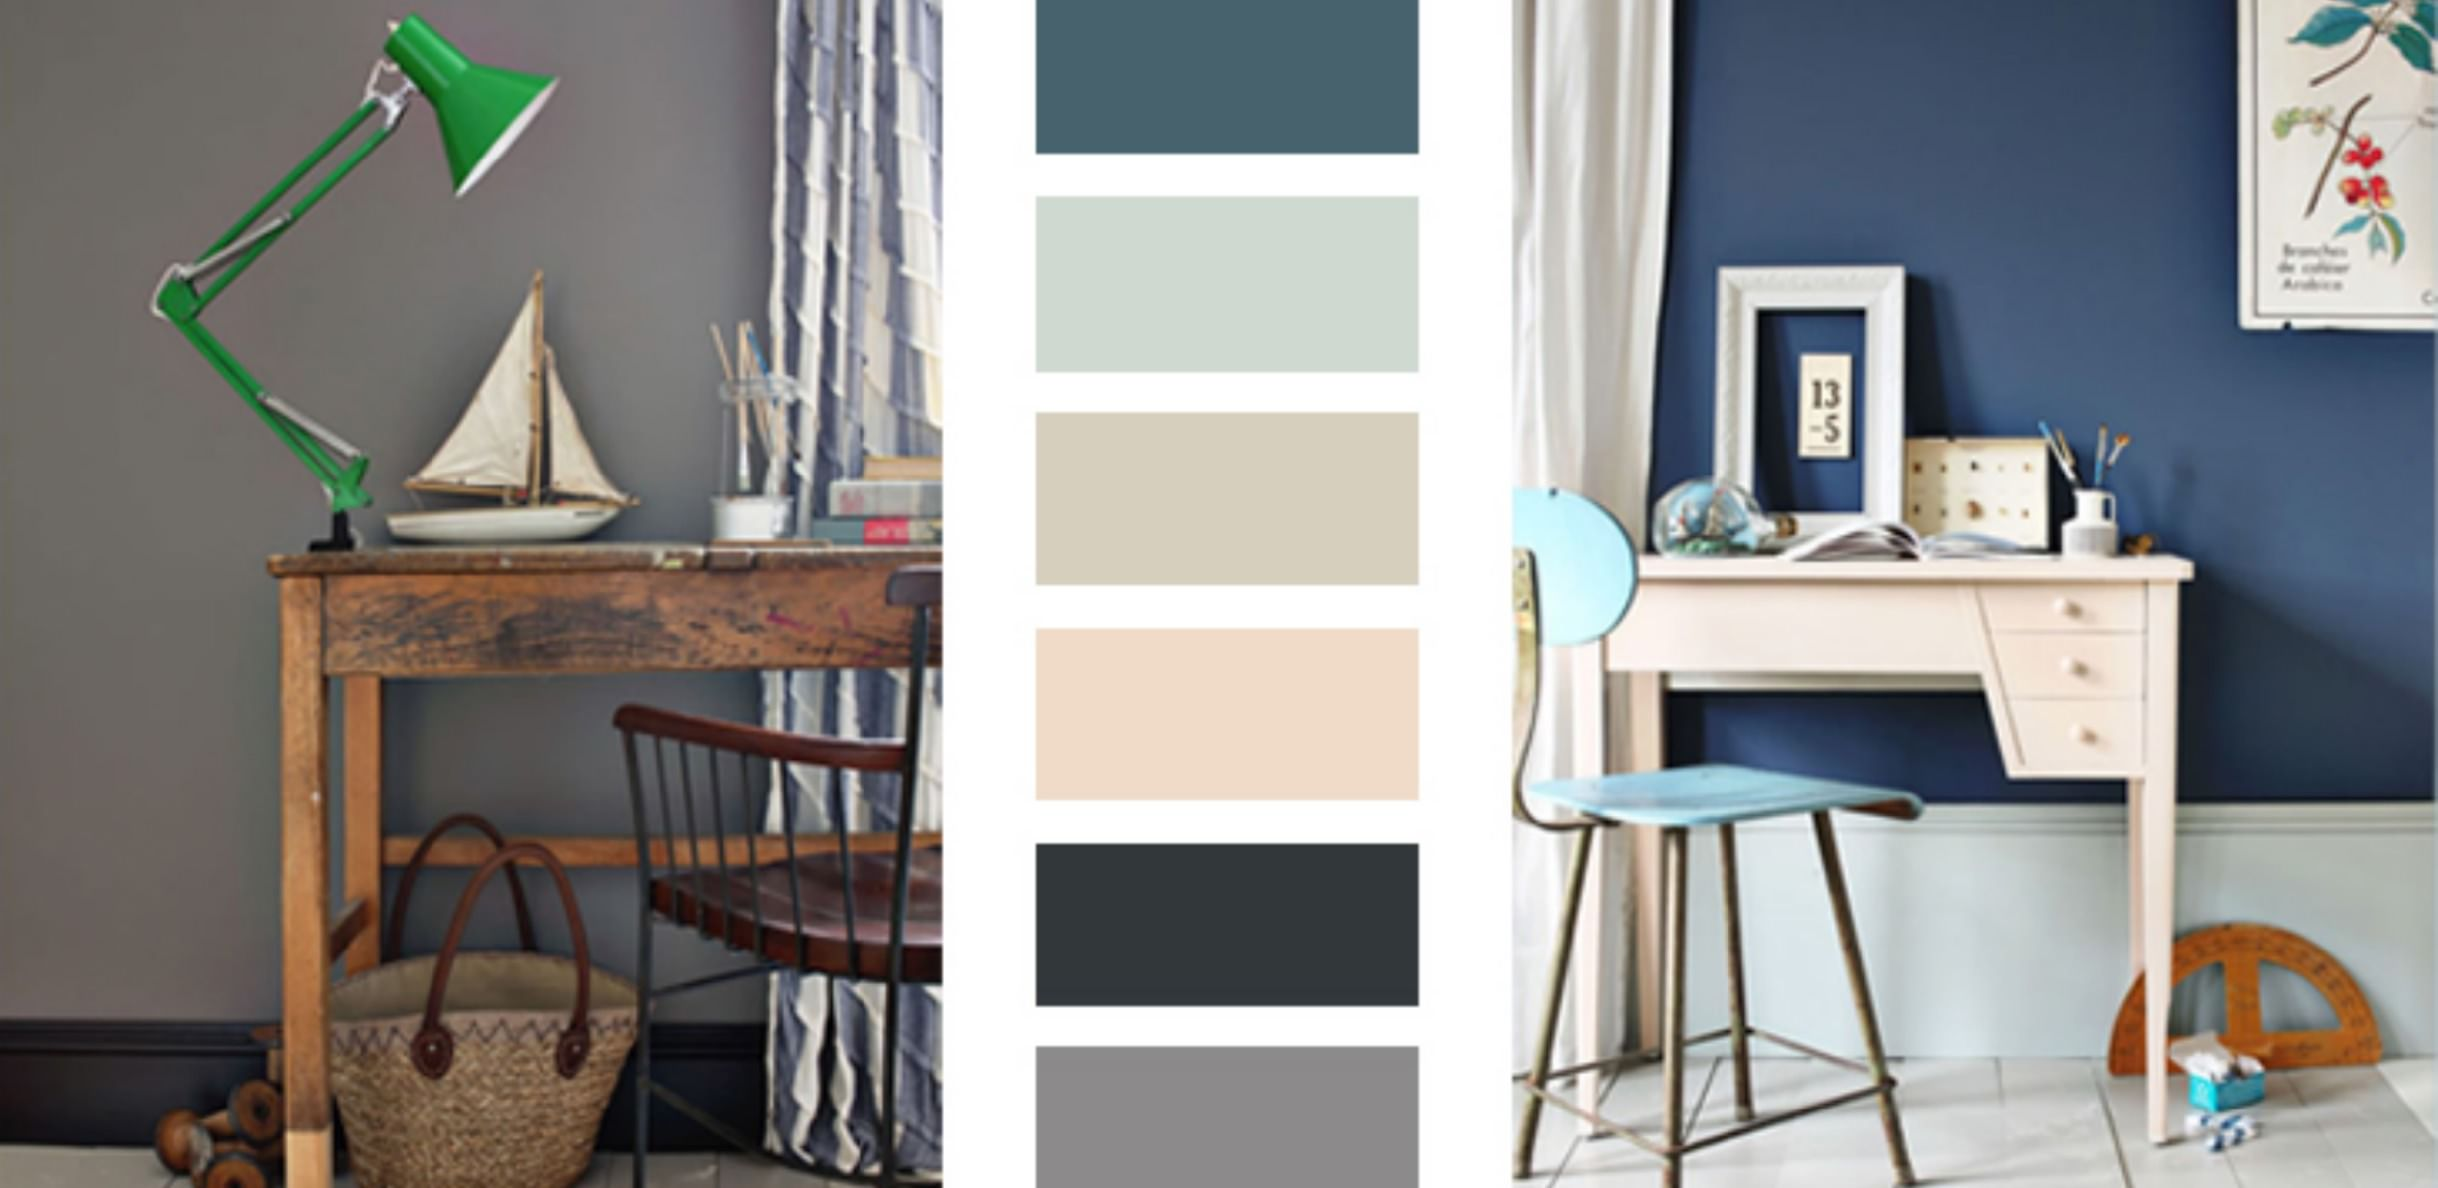 Farrow And Ball Kleurenwaaier.Farrow And Ball Kleuren Promotie Pinterest